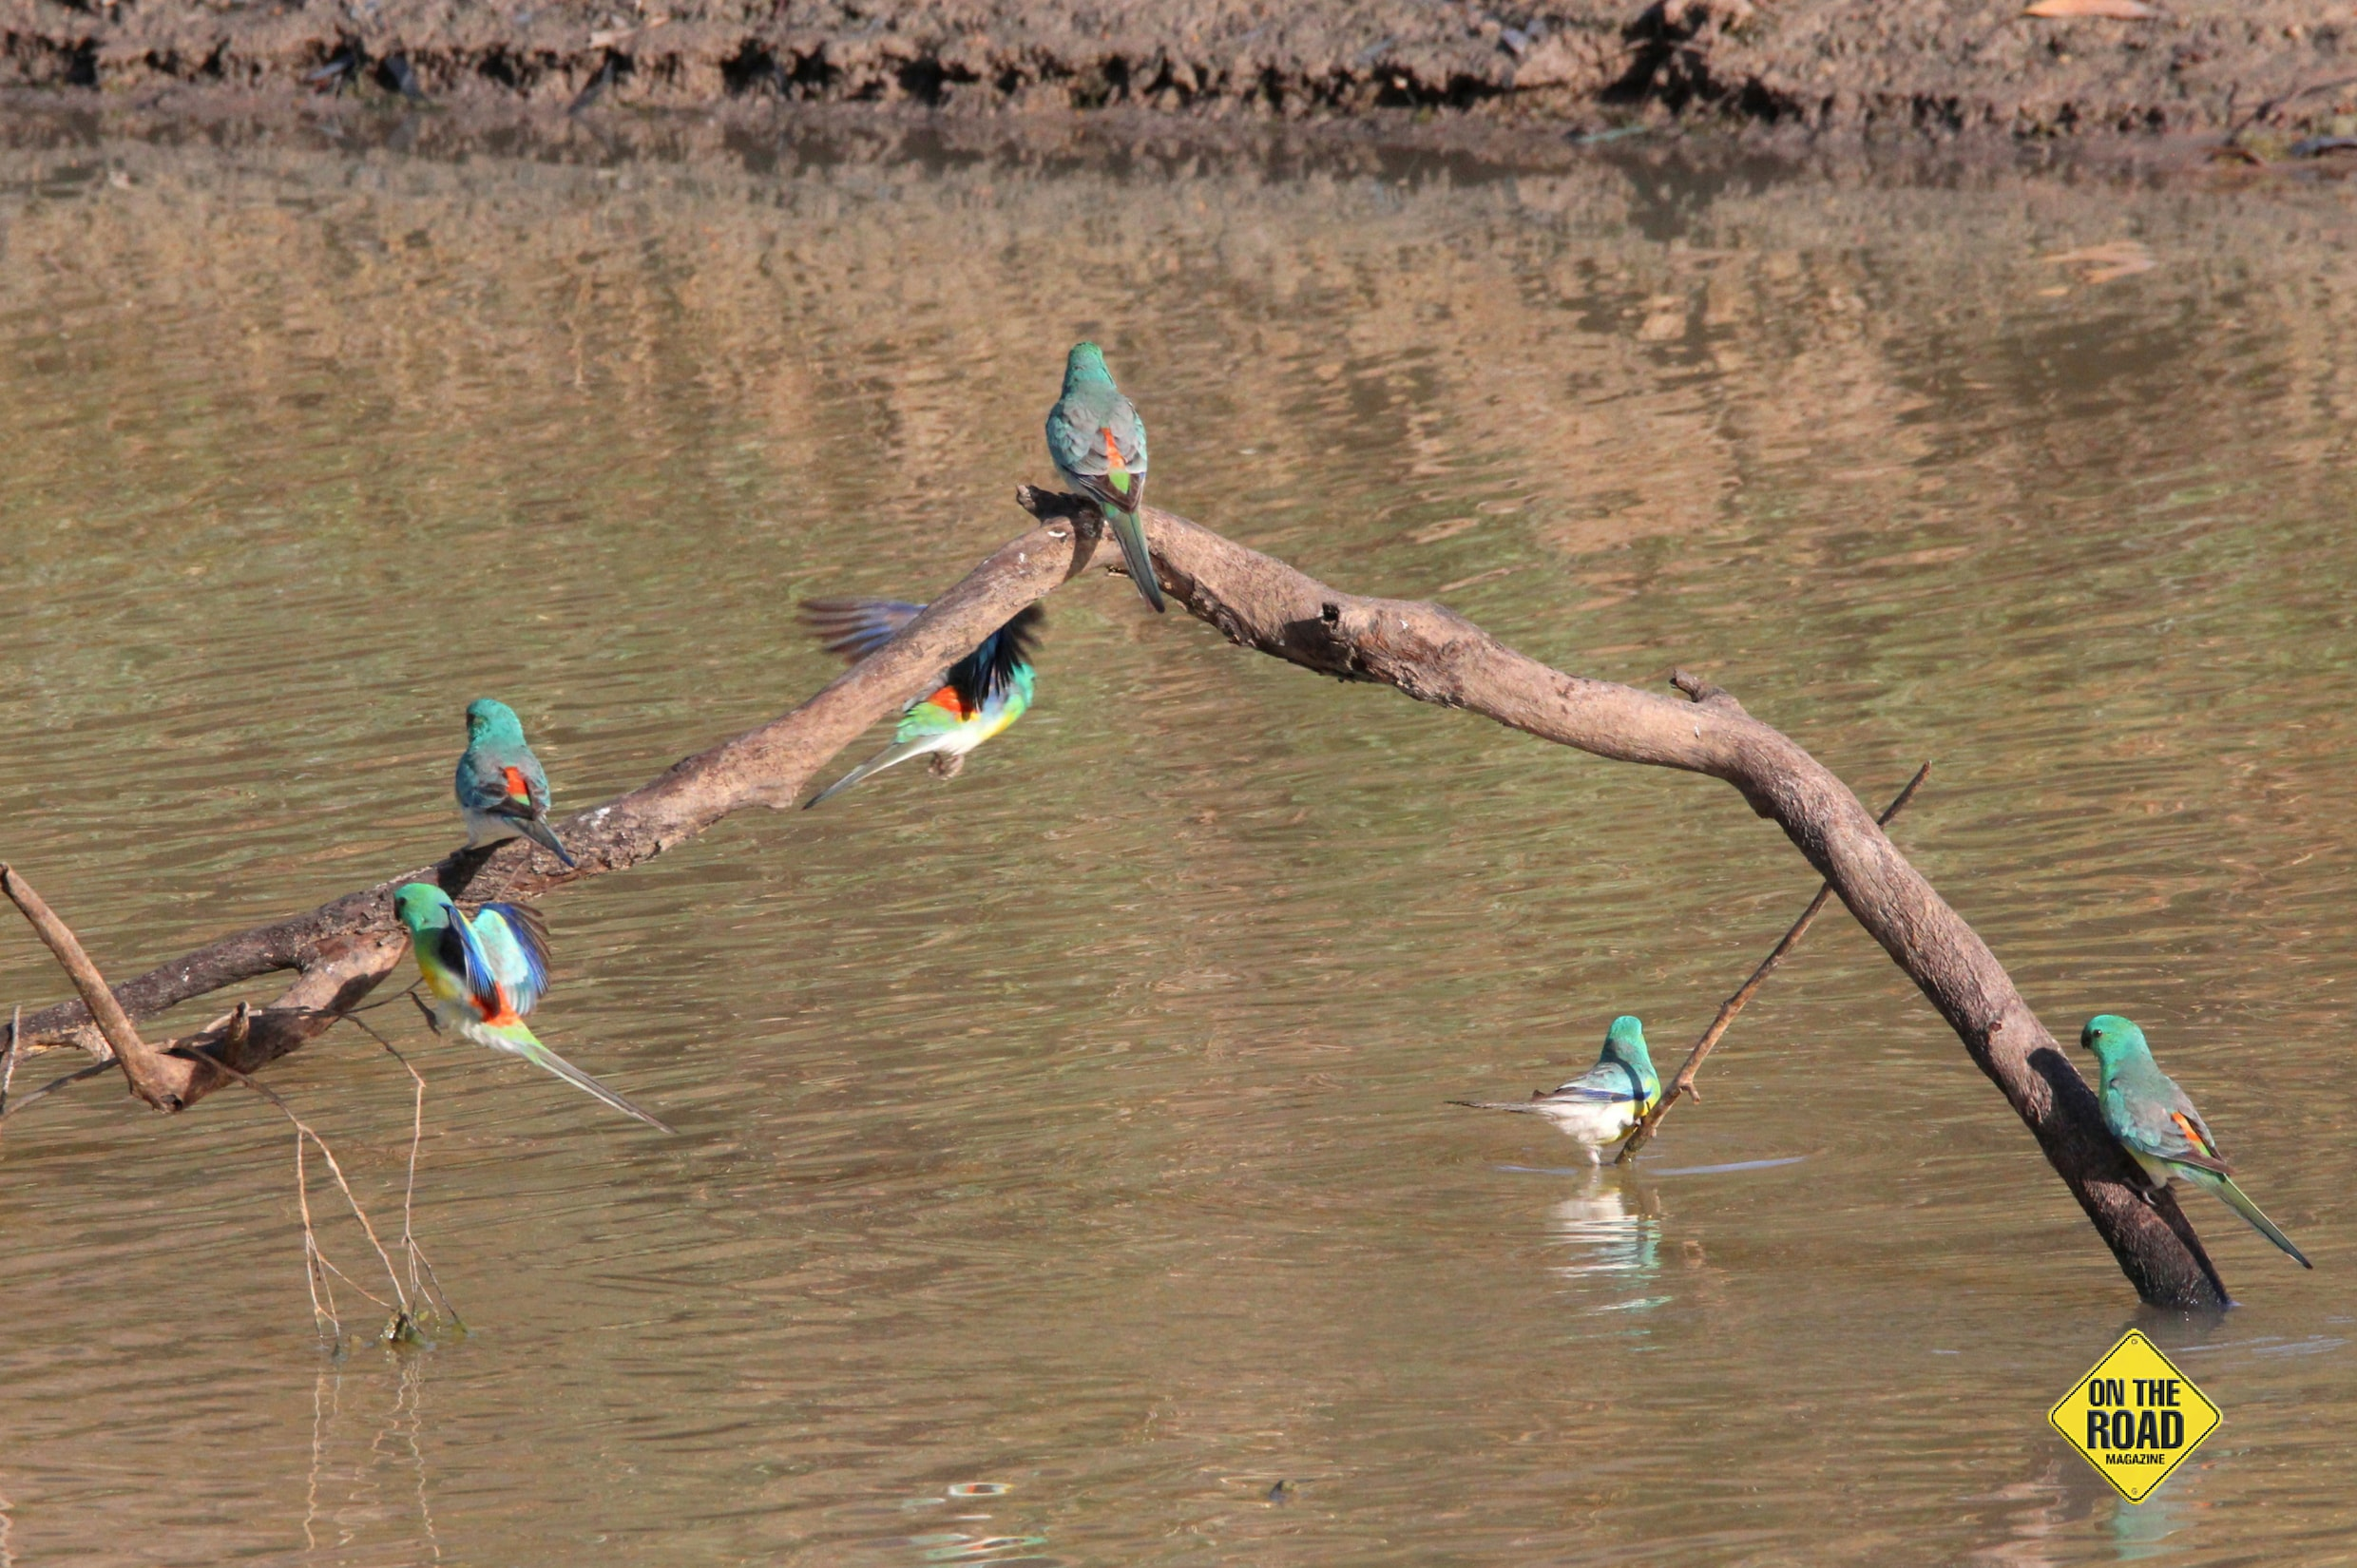 Parrots enjoying the cool of the river